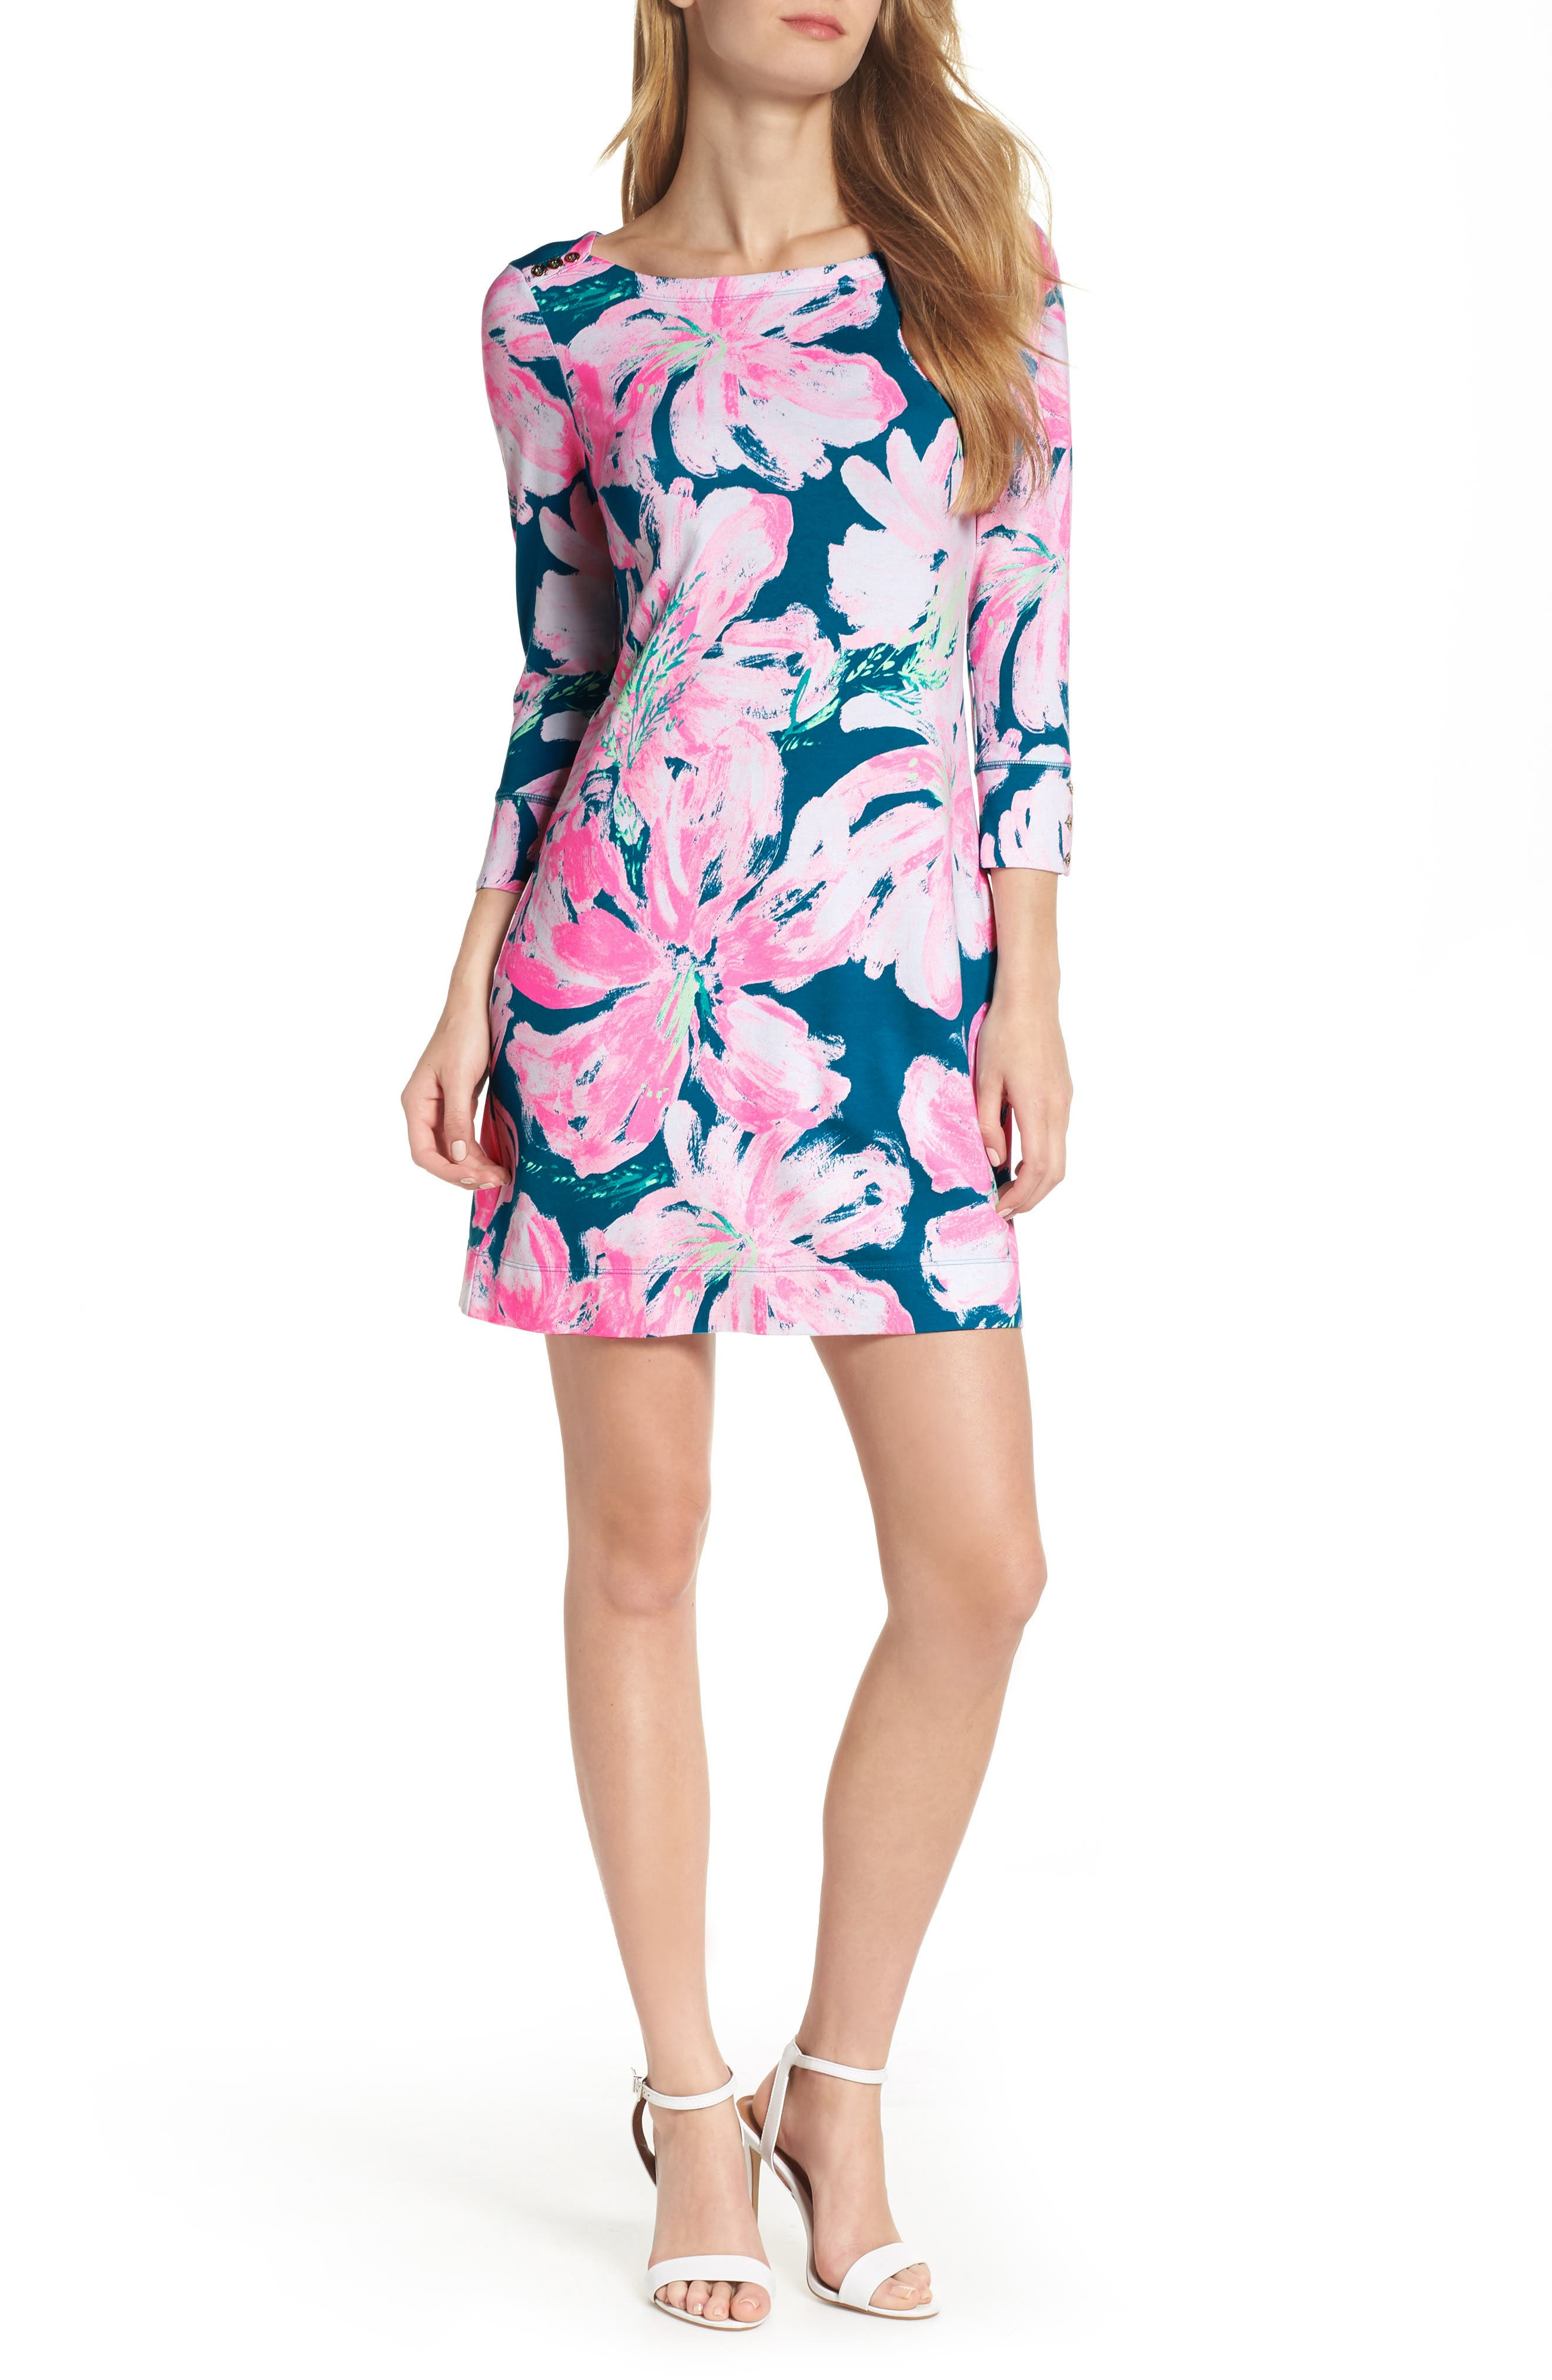 Lilly Pulitzer Sophie Upf 50+ Boat Neck Dress, Blue/green